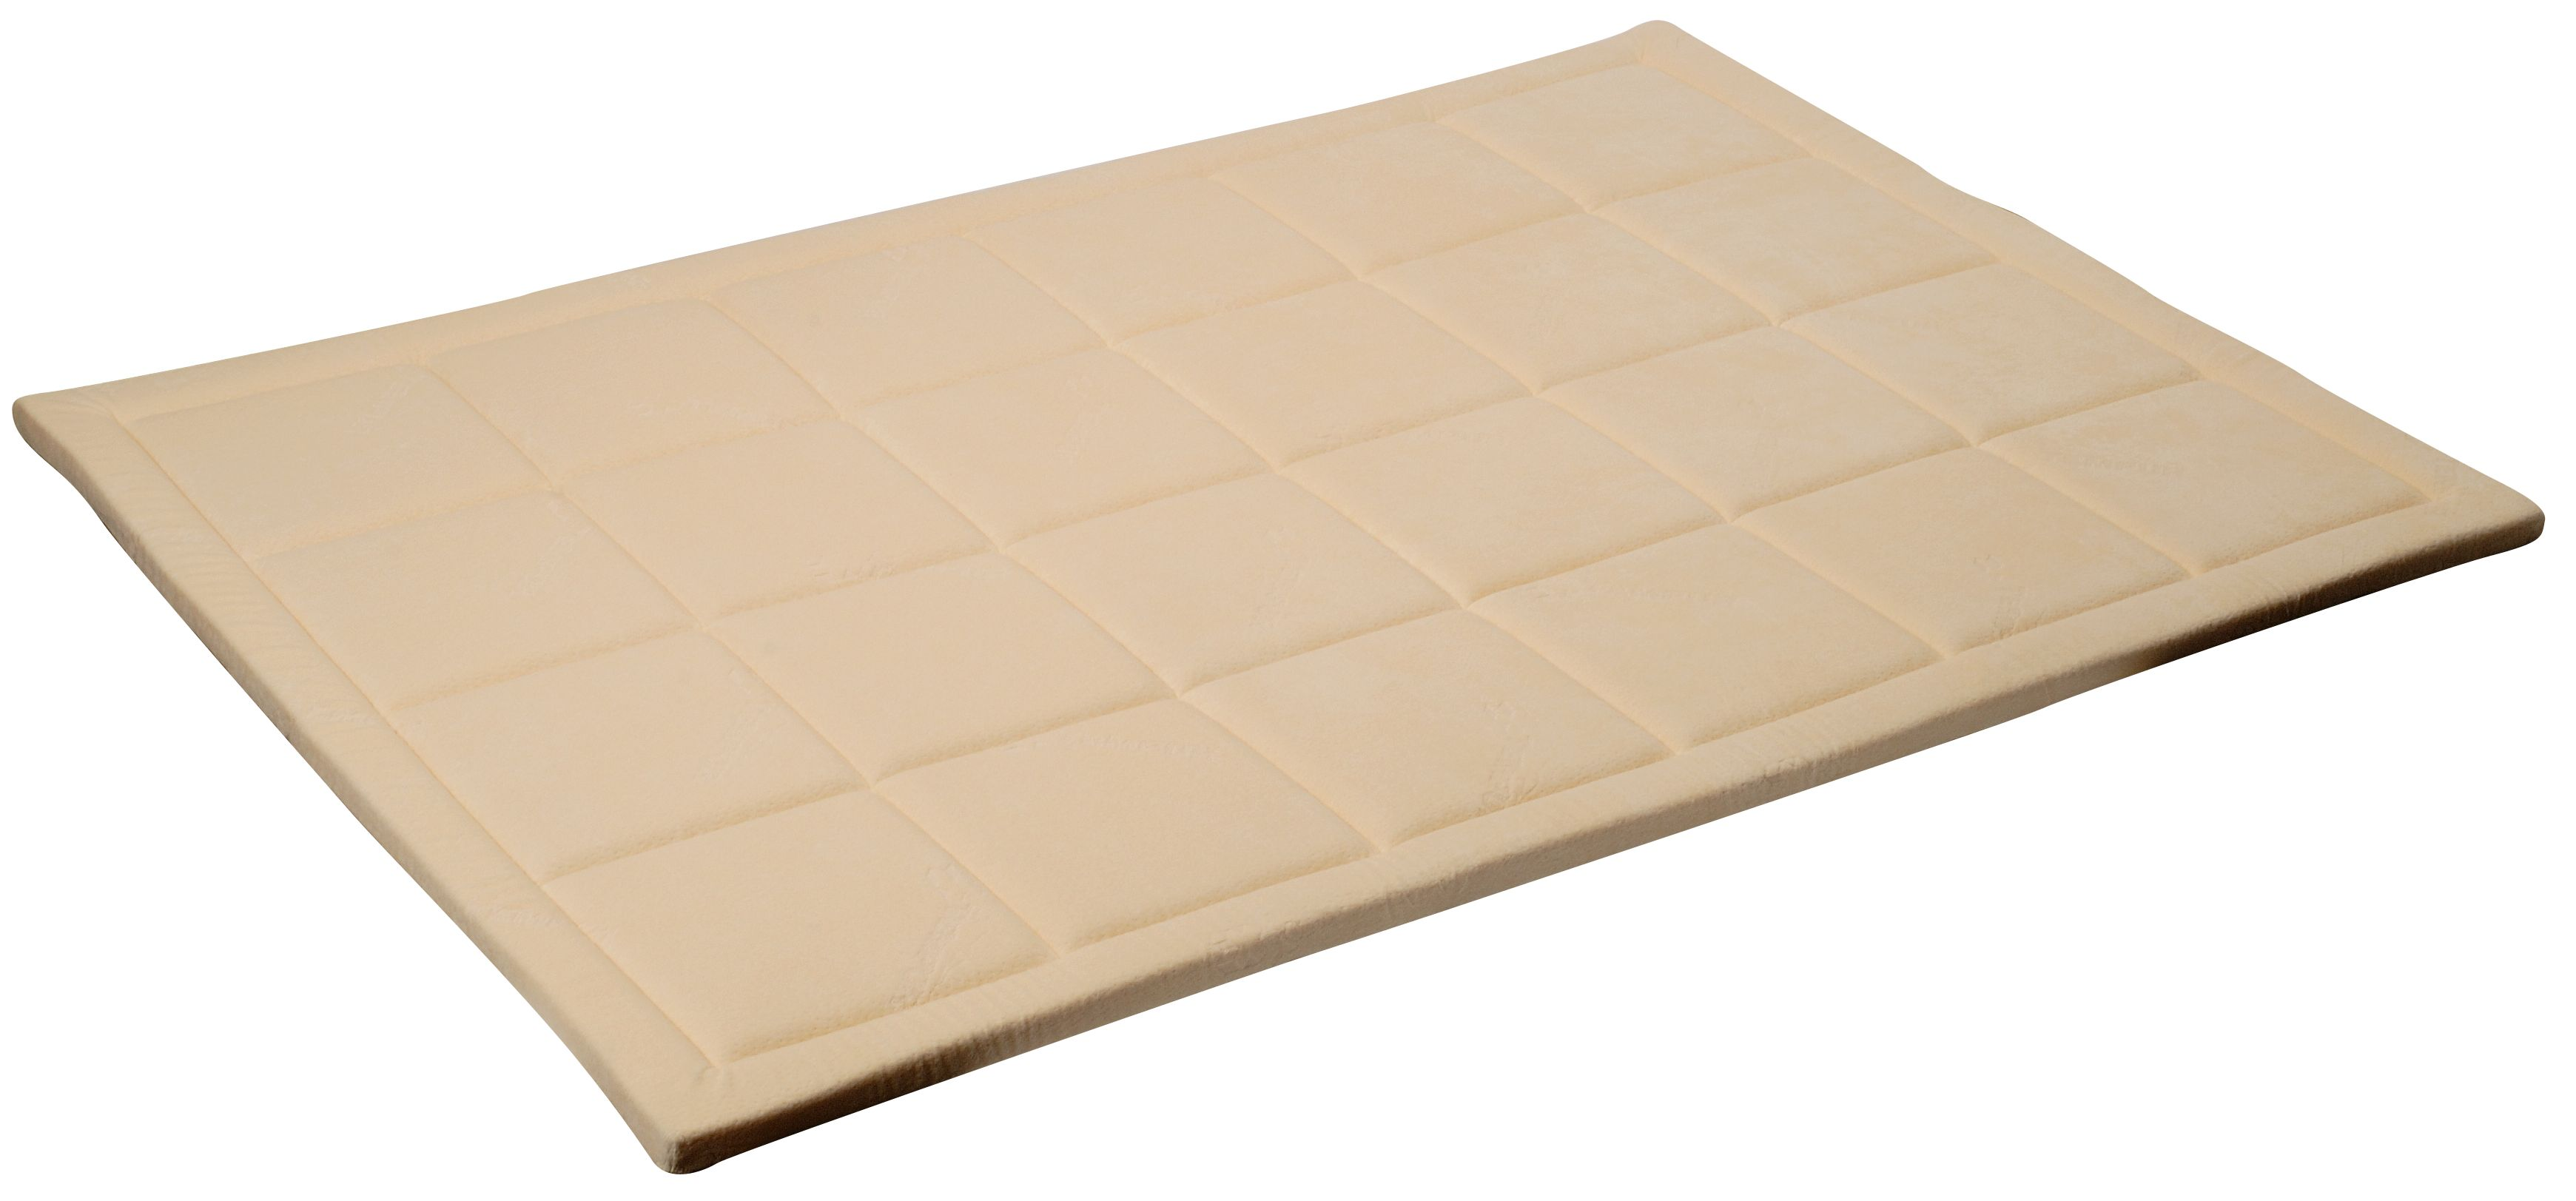 double mattress topper